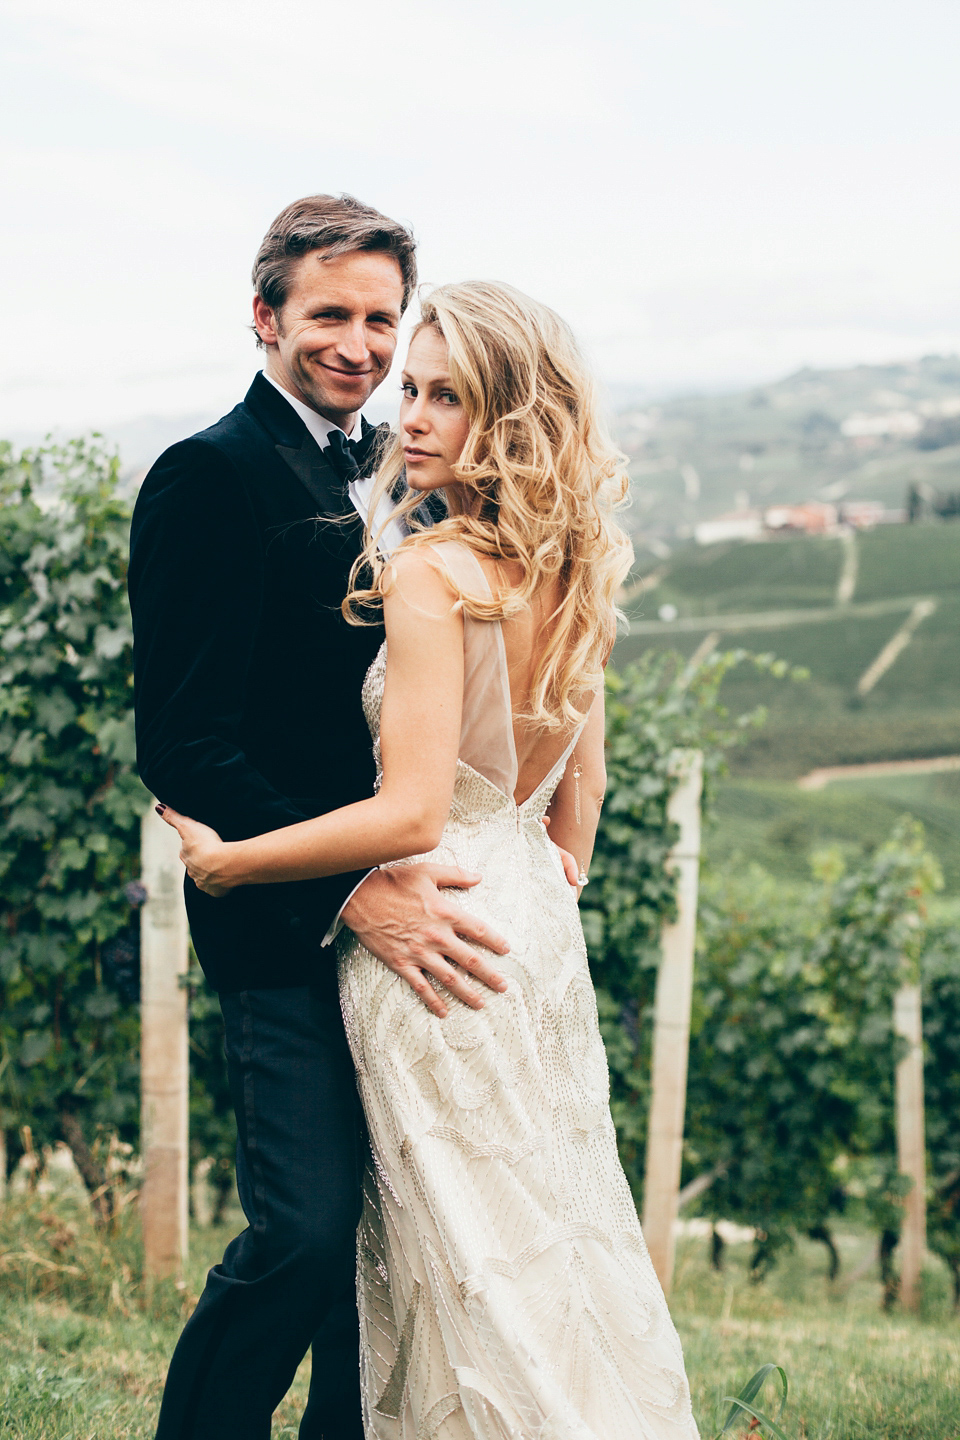 A Vanity Fair Inspired Fun and Glamorous Wedding in the Italian Countryside